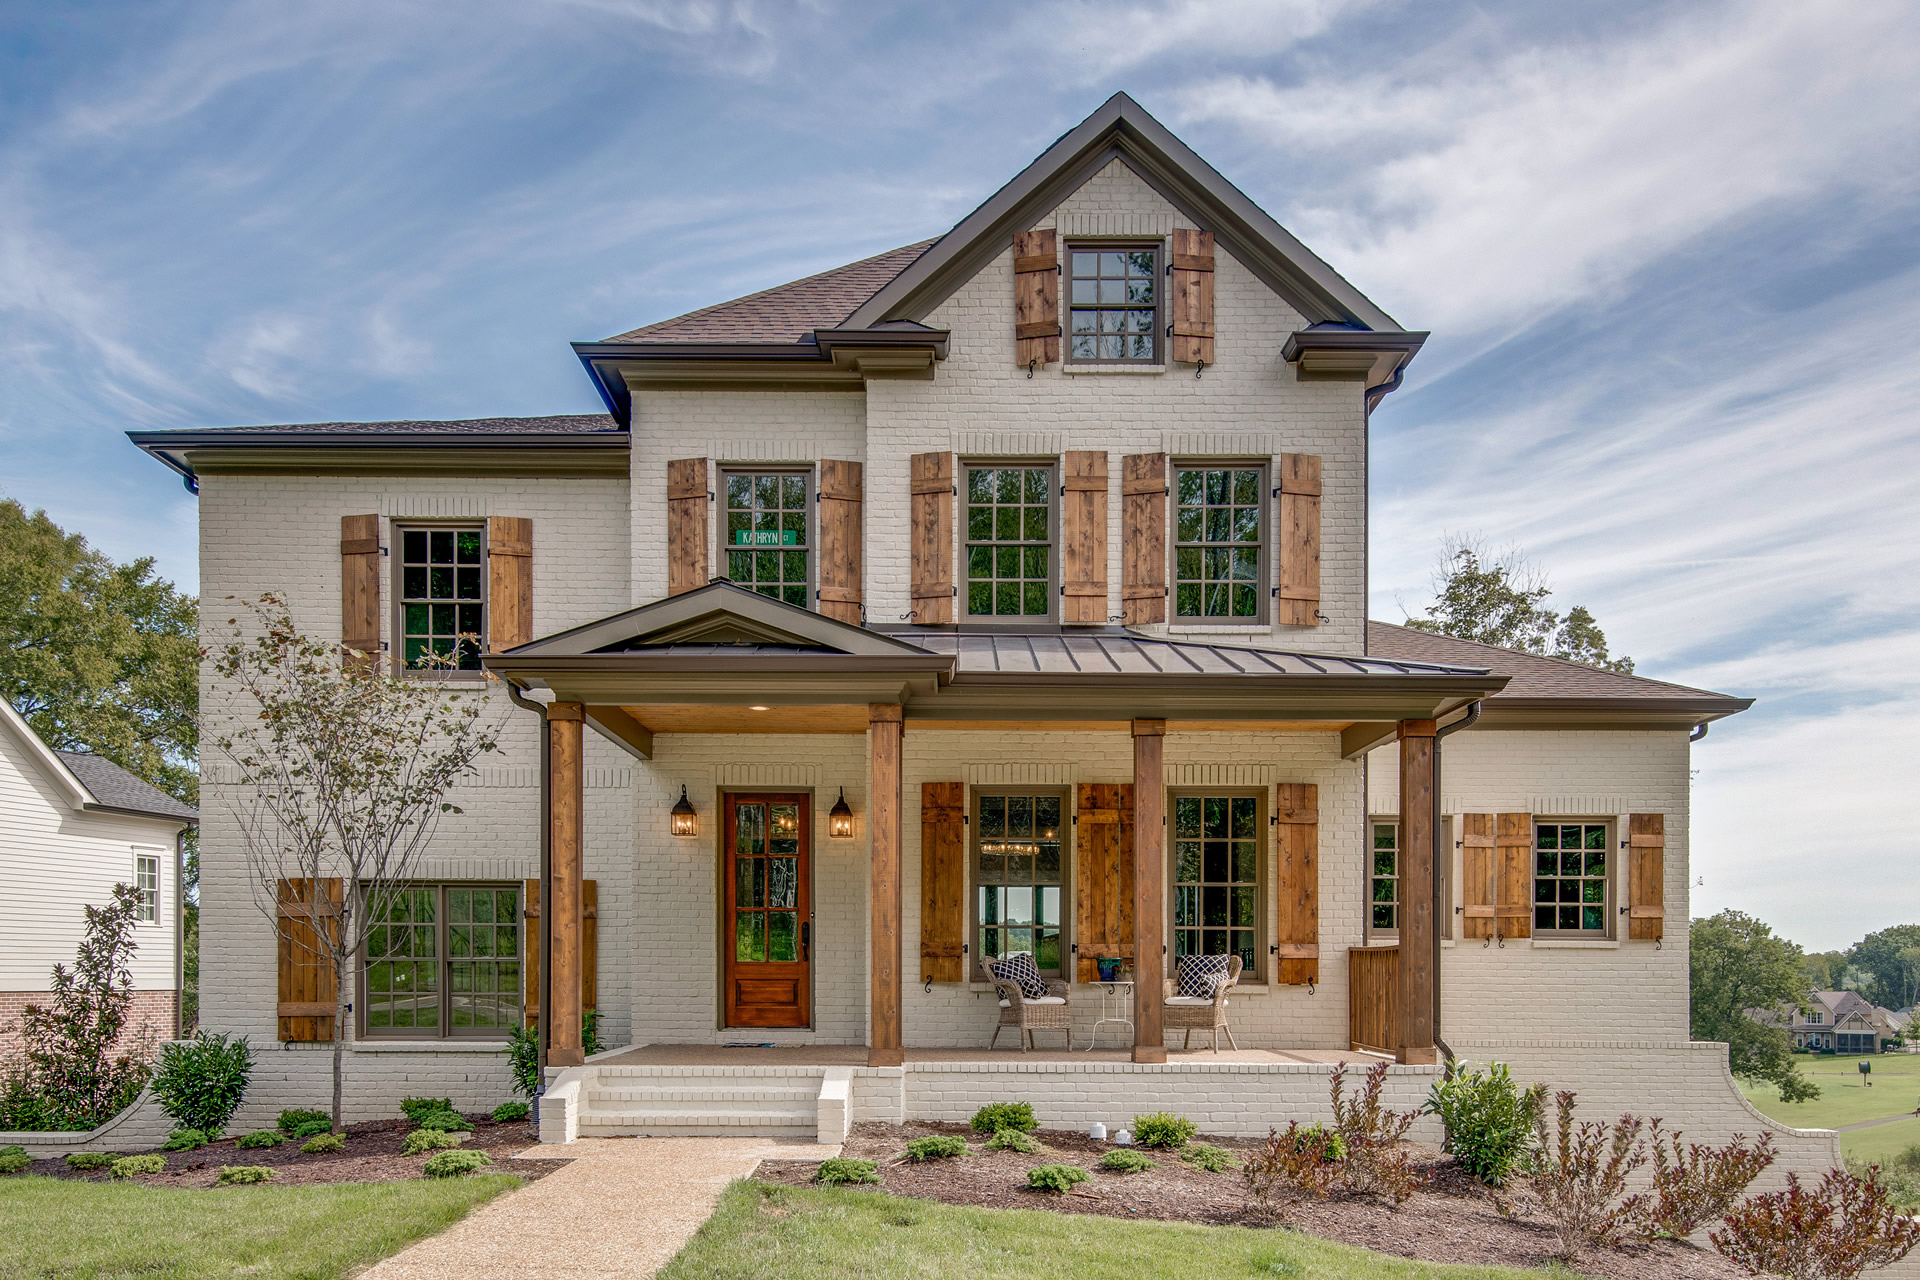 Three-story Painted Brick Custom Home